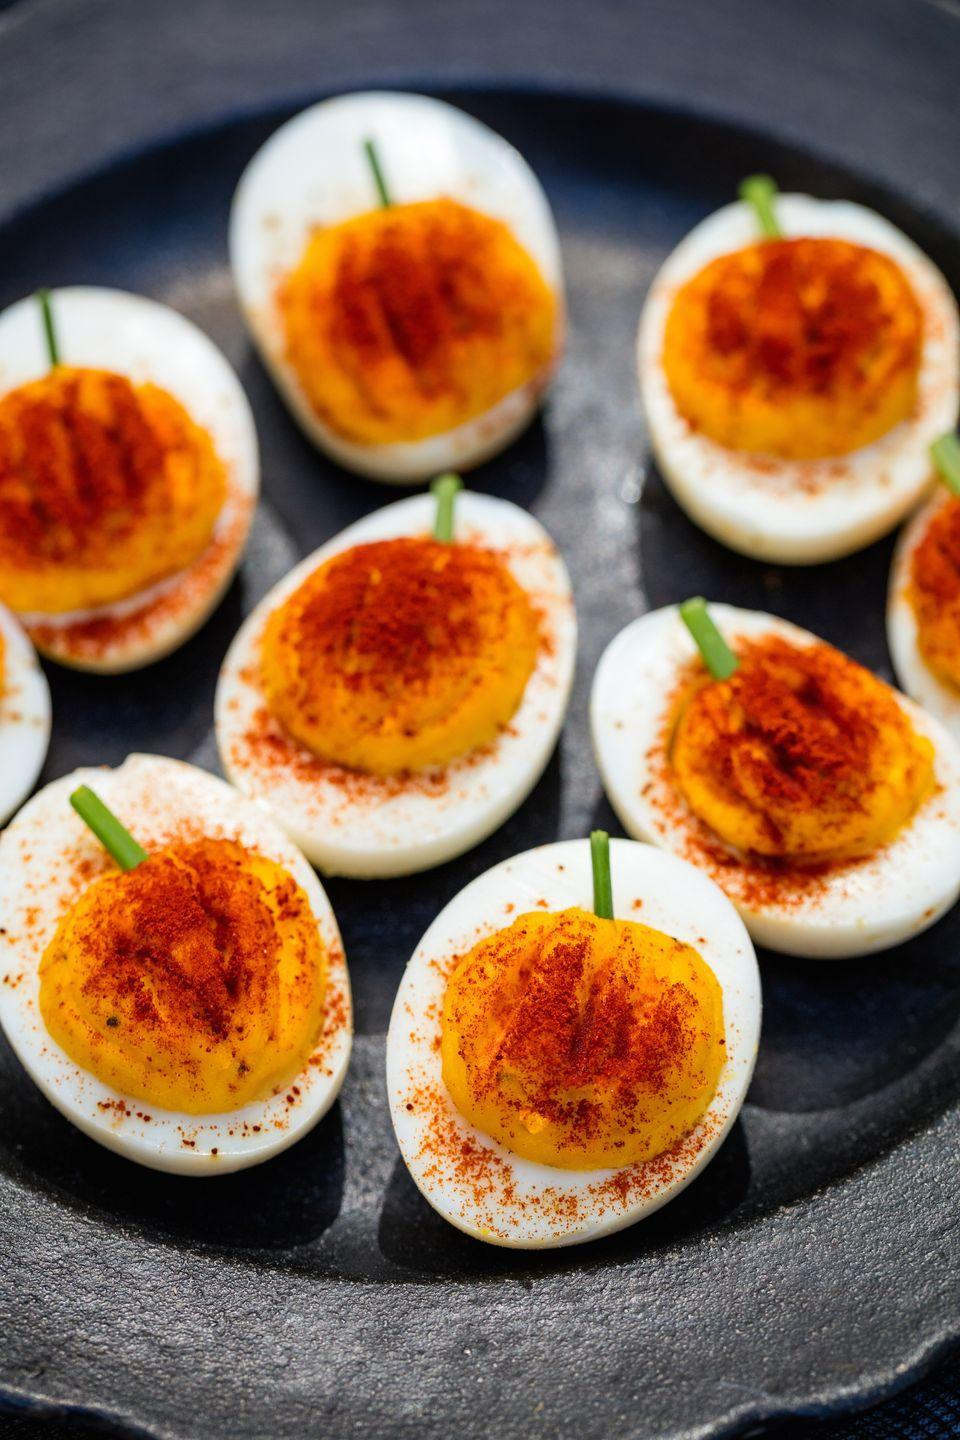 "<p>These pumpkin deviled eggs are way easier to make than a jack-o'-lantern. Paprika gives each its bold color, while a fresh chive makes for the perfect stem.</p><p>Get the recipe from <a href=""https://www.delish.com/cooking/recipe-ideas/recipes/a44140/pumpkin-deviled-eggs-recipe/"" rel=""nofollow noopener"" target=""_blank"" data-ylk=""slk:Delish"" class=""link rapid-noclick-resp"">Delish</a>. </p>"